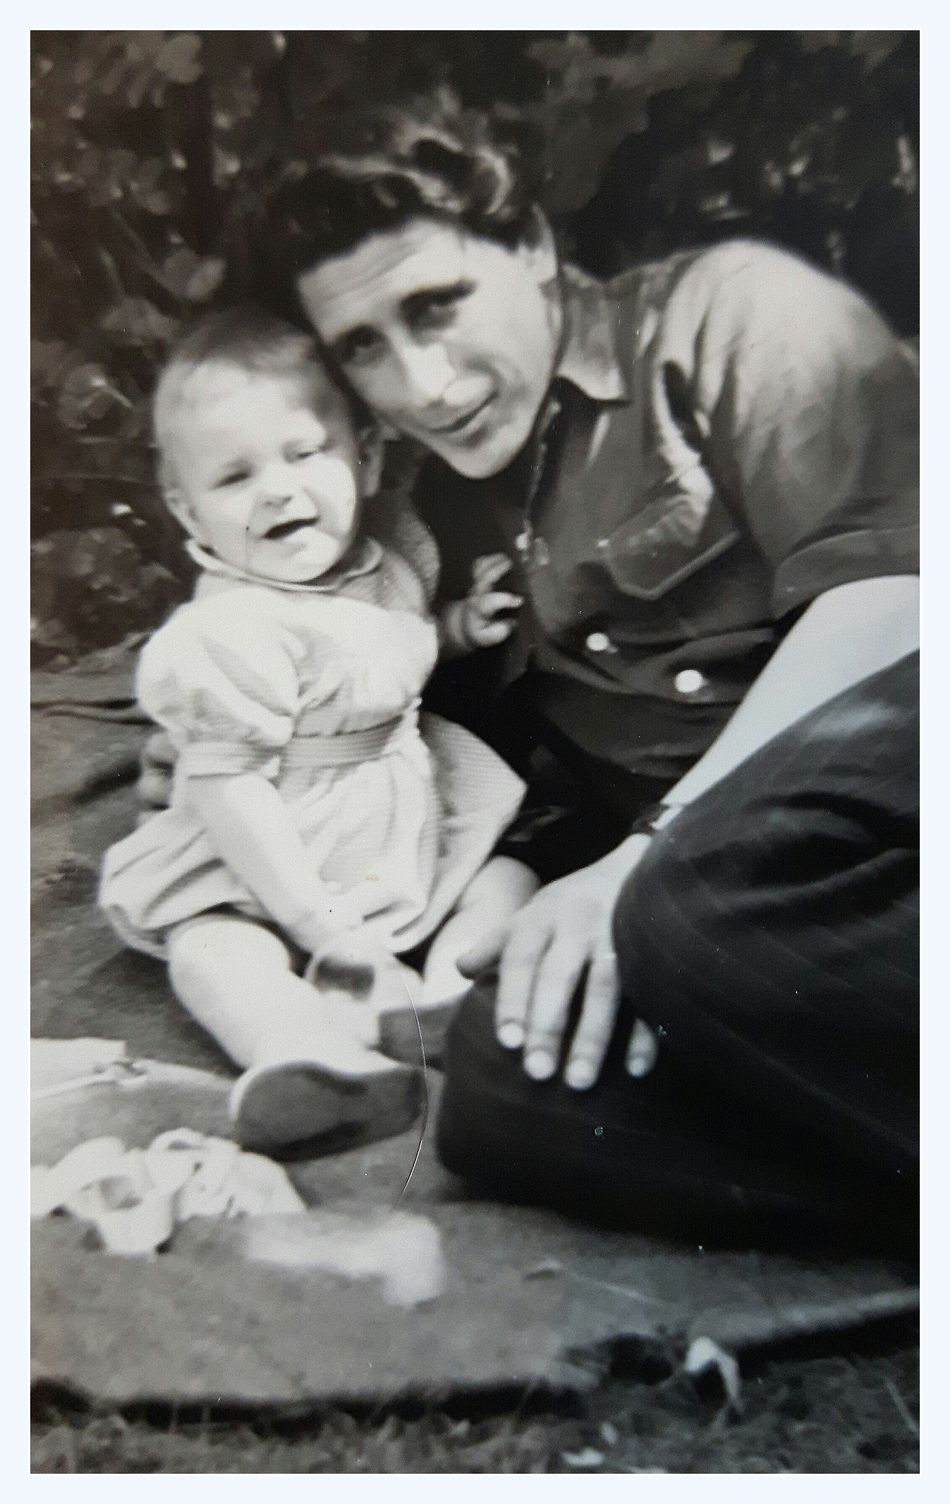 Baby Babygirl Cheerful Father And Daughter Happiness Love My Father Who Is No More On This World My Father And I Smiling